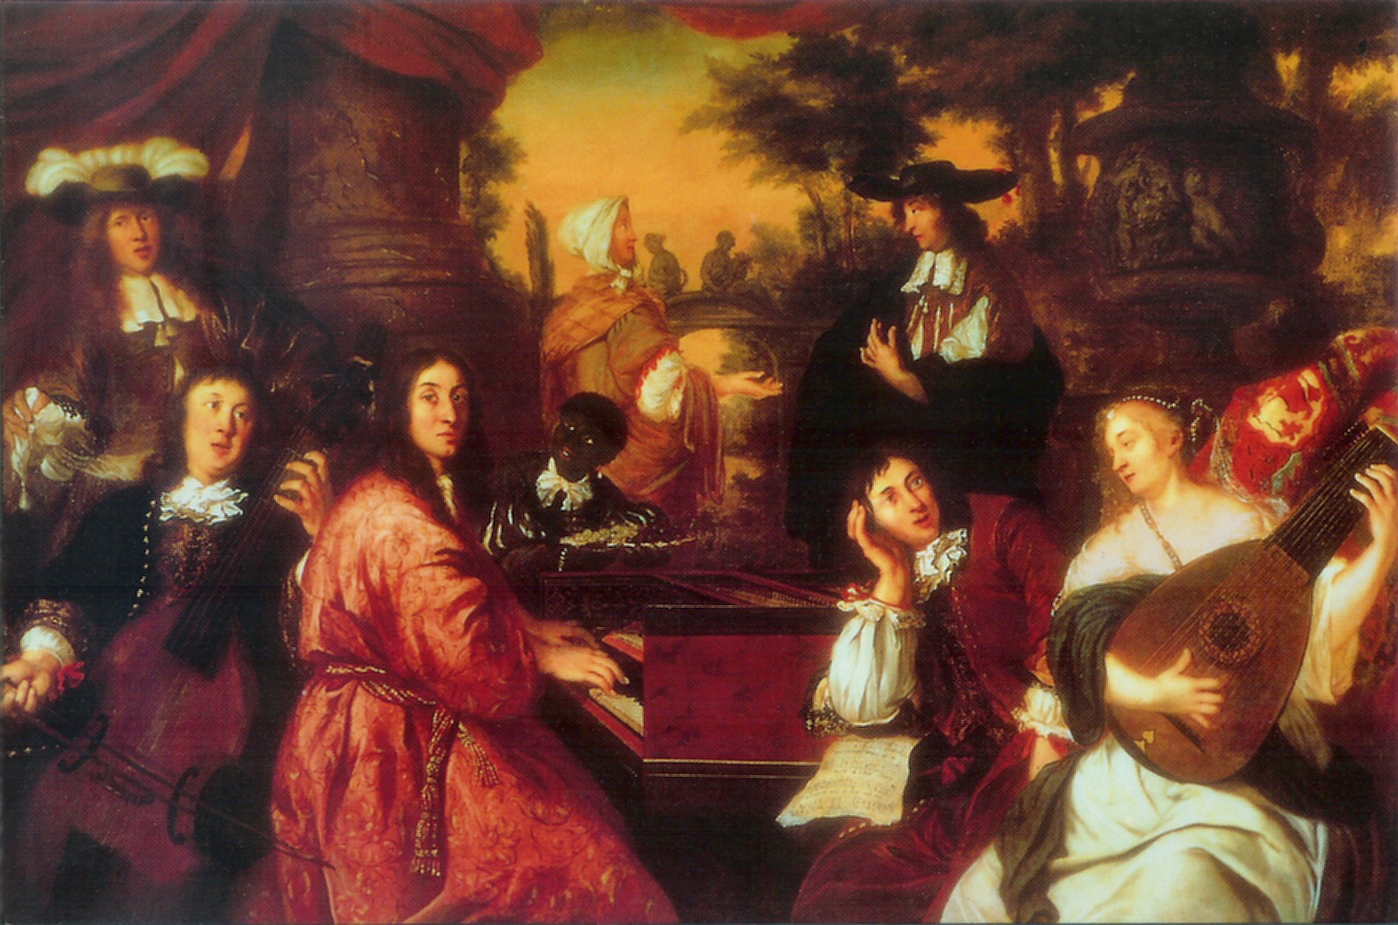 File:Musical Company by Johannes Voorhout (1674).jpg